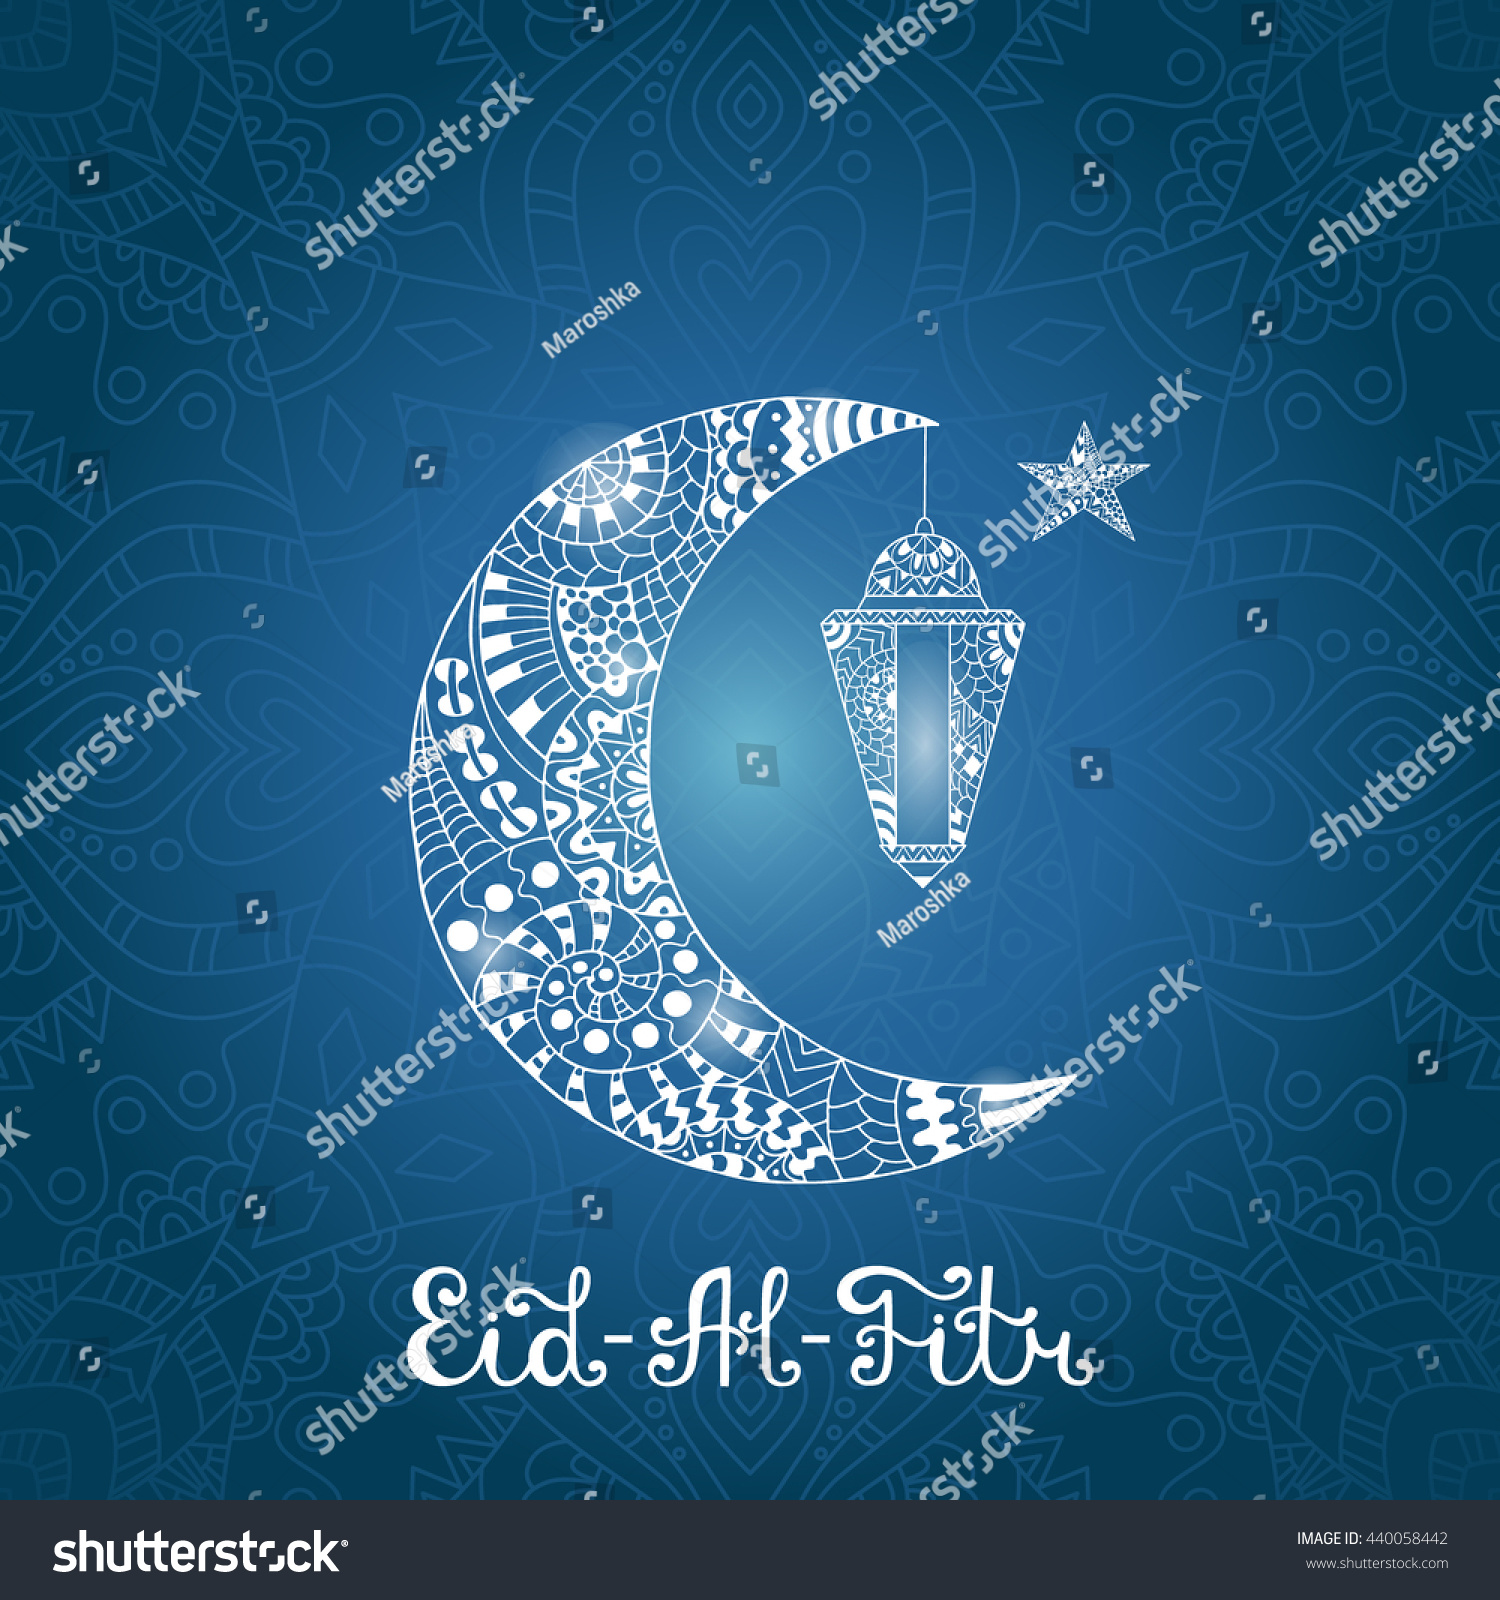 Vector illustration eid al fitr greeting stock vector 440058442 vector illustration eid al fitr greeting card with ornamental lamp ornate crescent moon and kristyandbryce Images